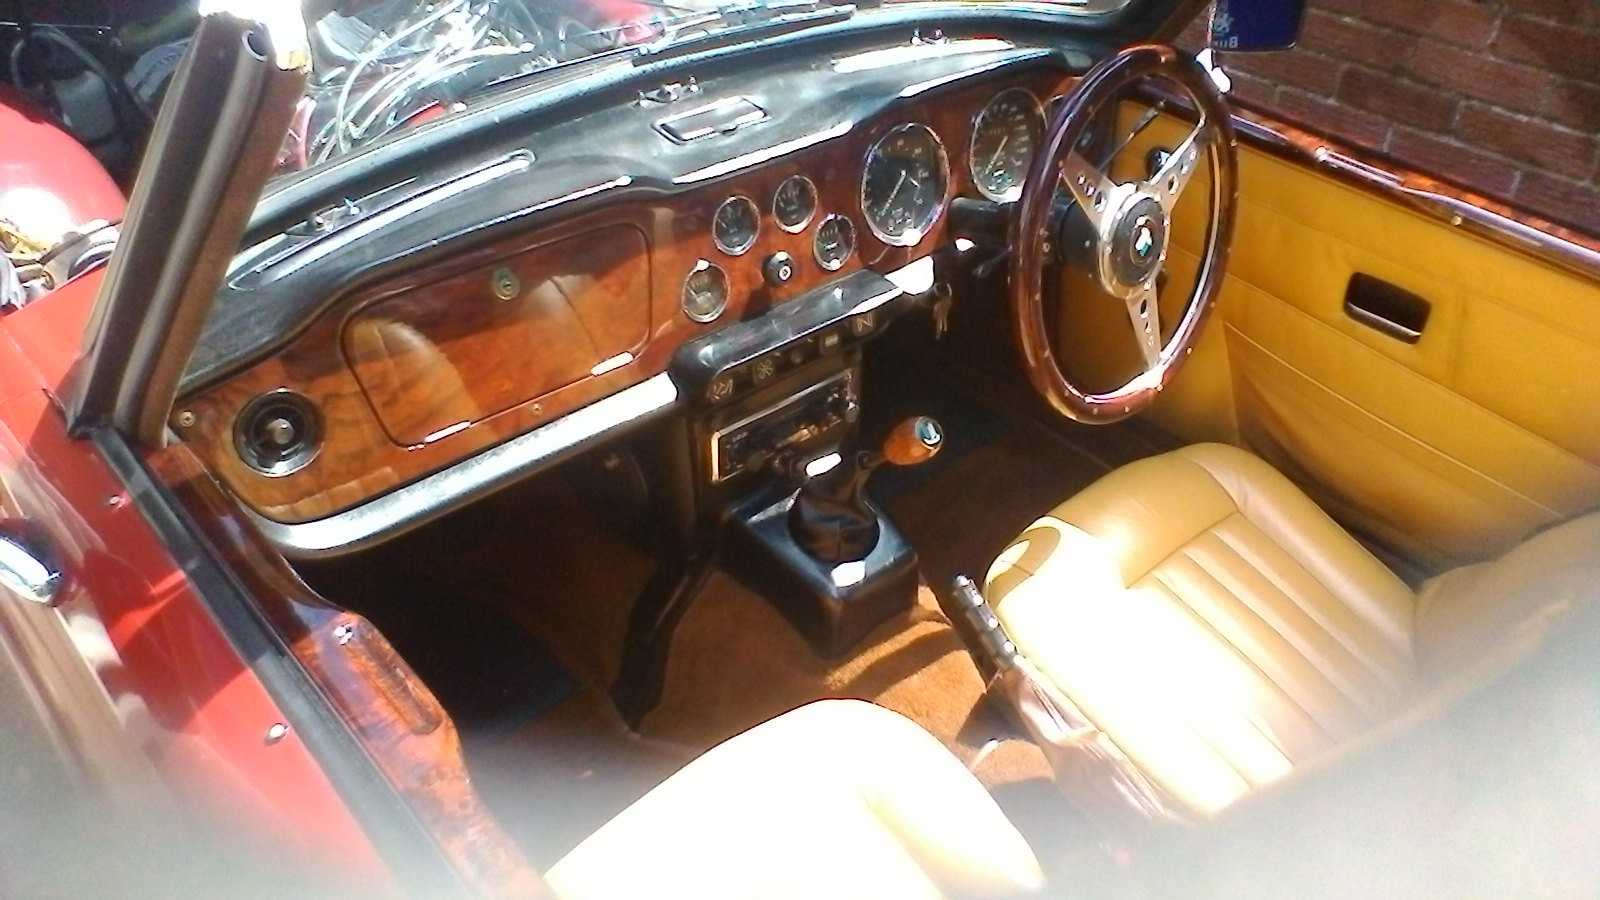 1975 Triumph TR 6 Genuine RHD car with overdrive SOLD (picture 6 of 6)